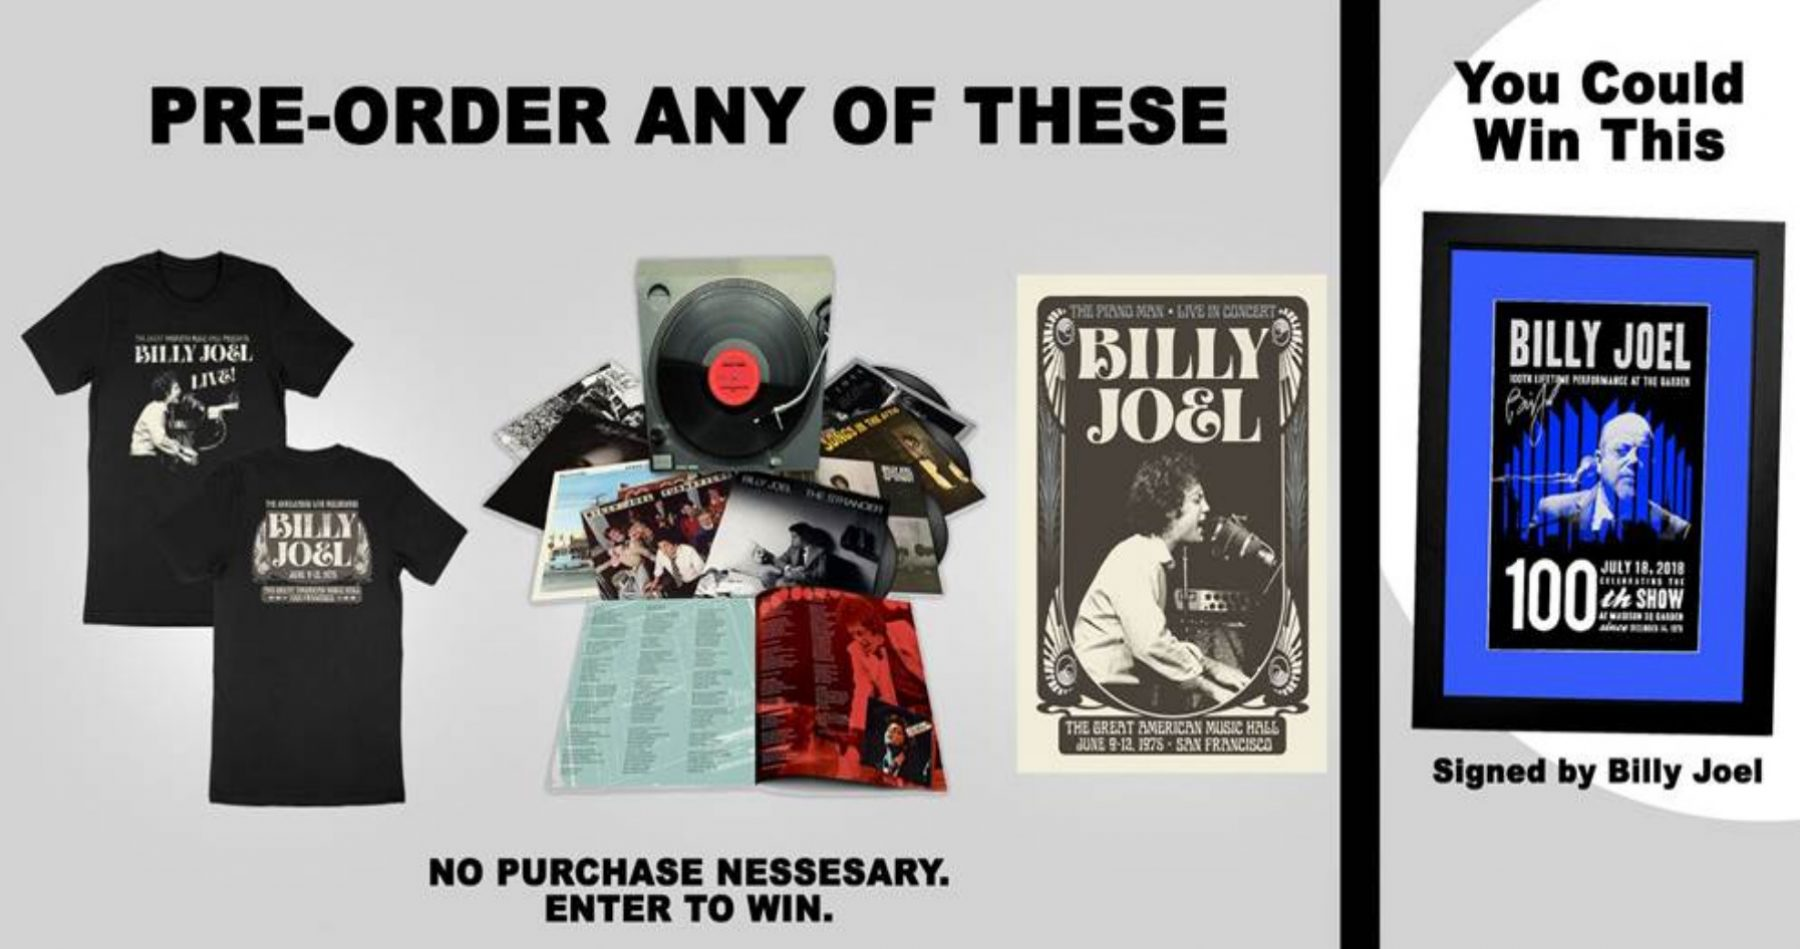 Billy Joel signed poster giveaway sweepstakes